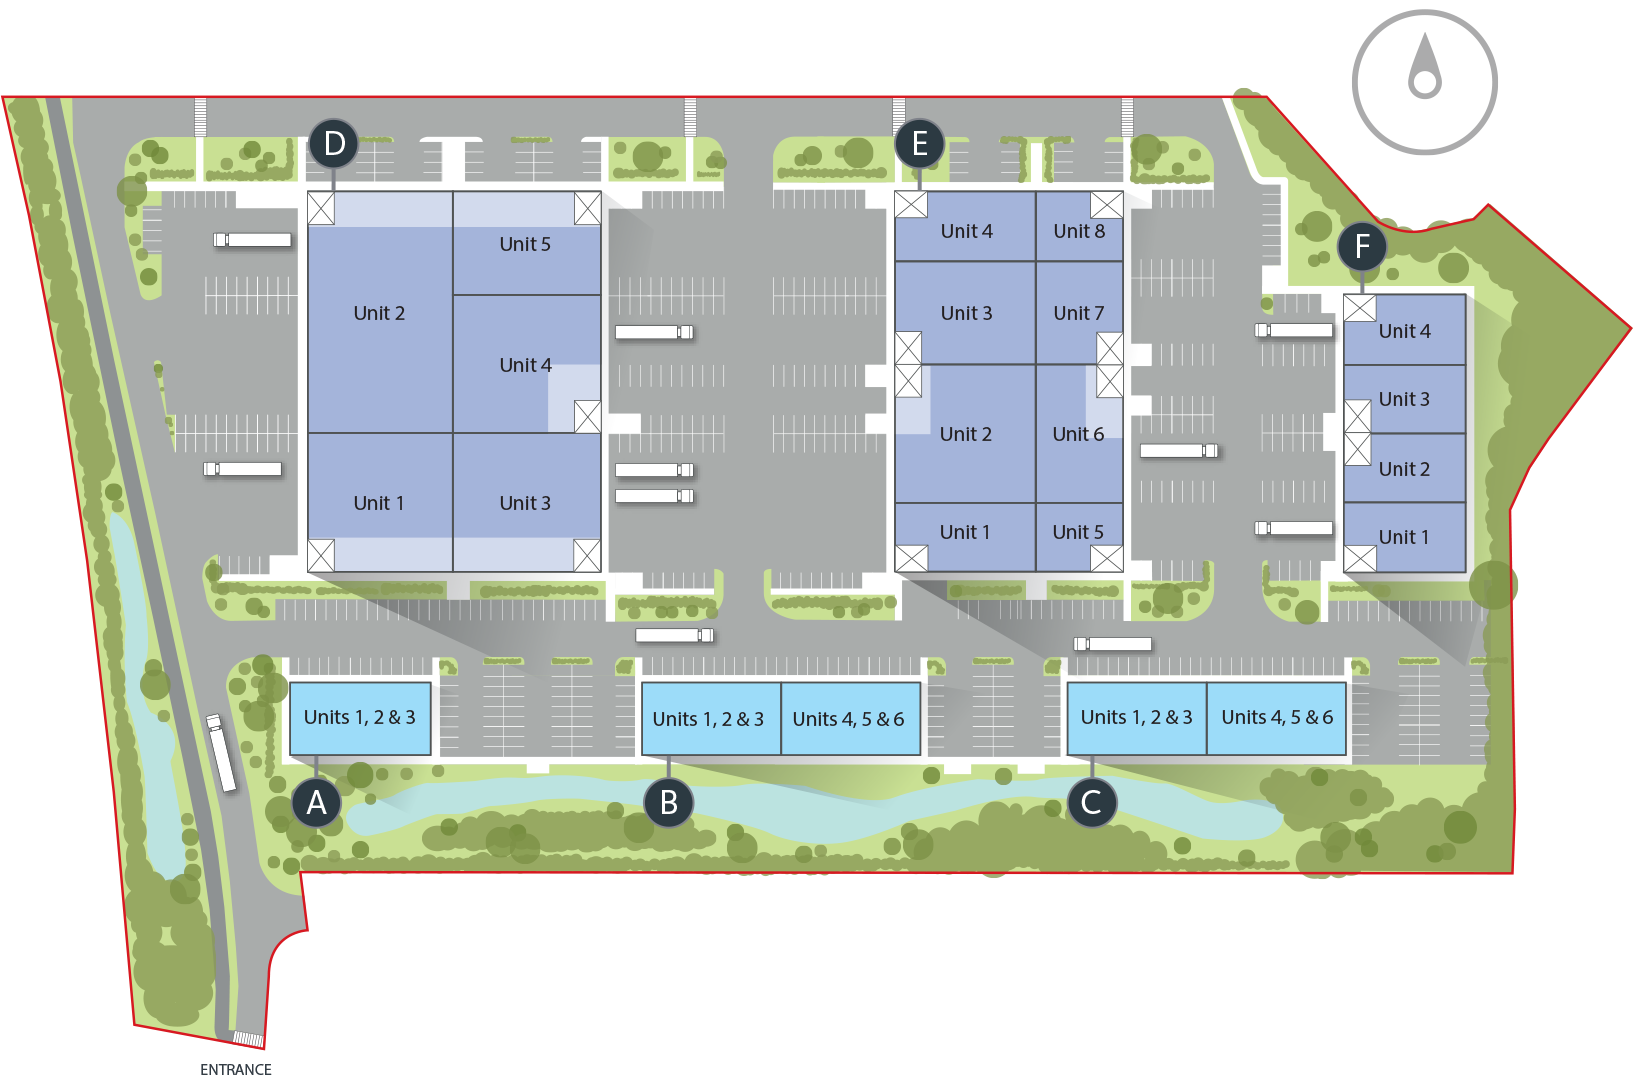 ADANAC North site plan showing Units